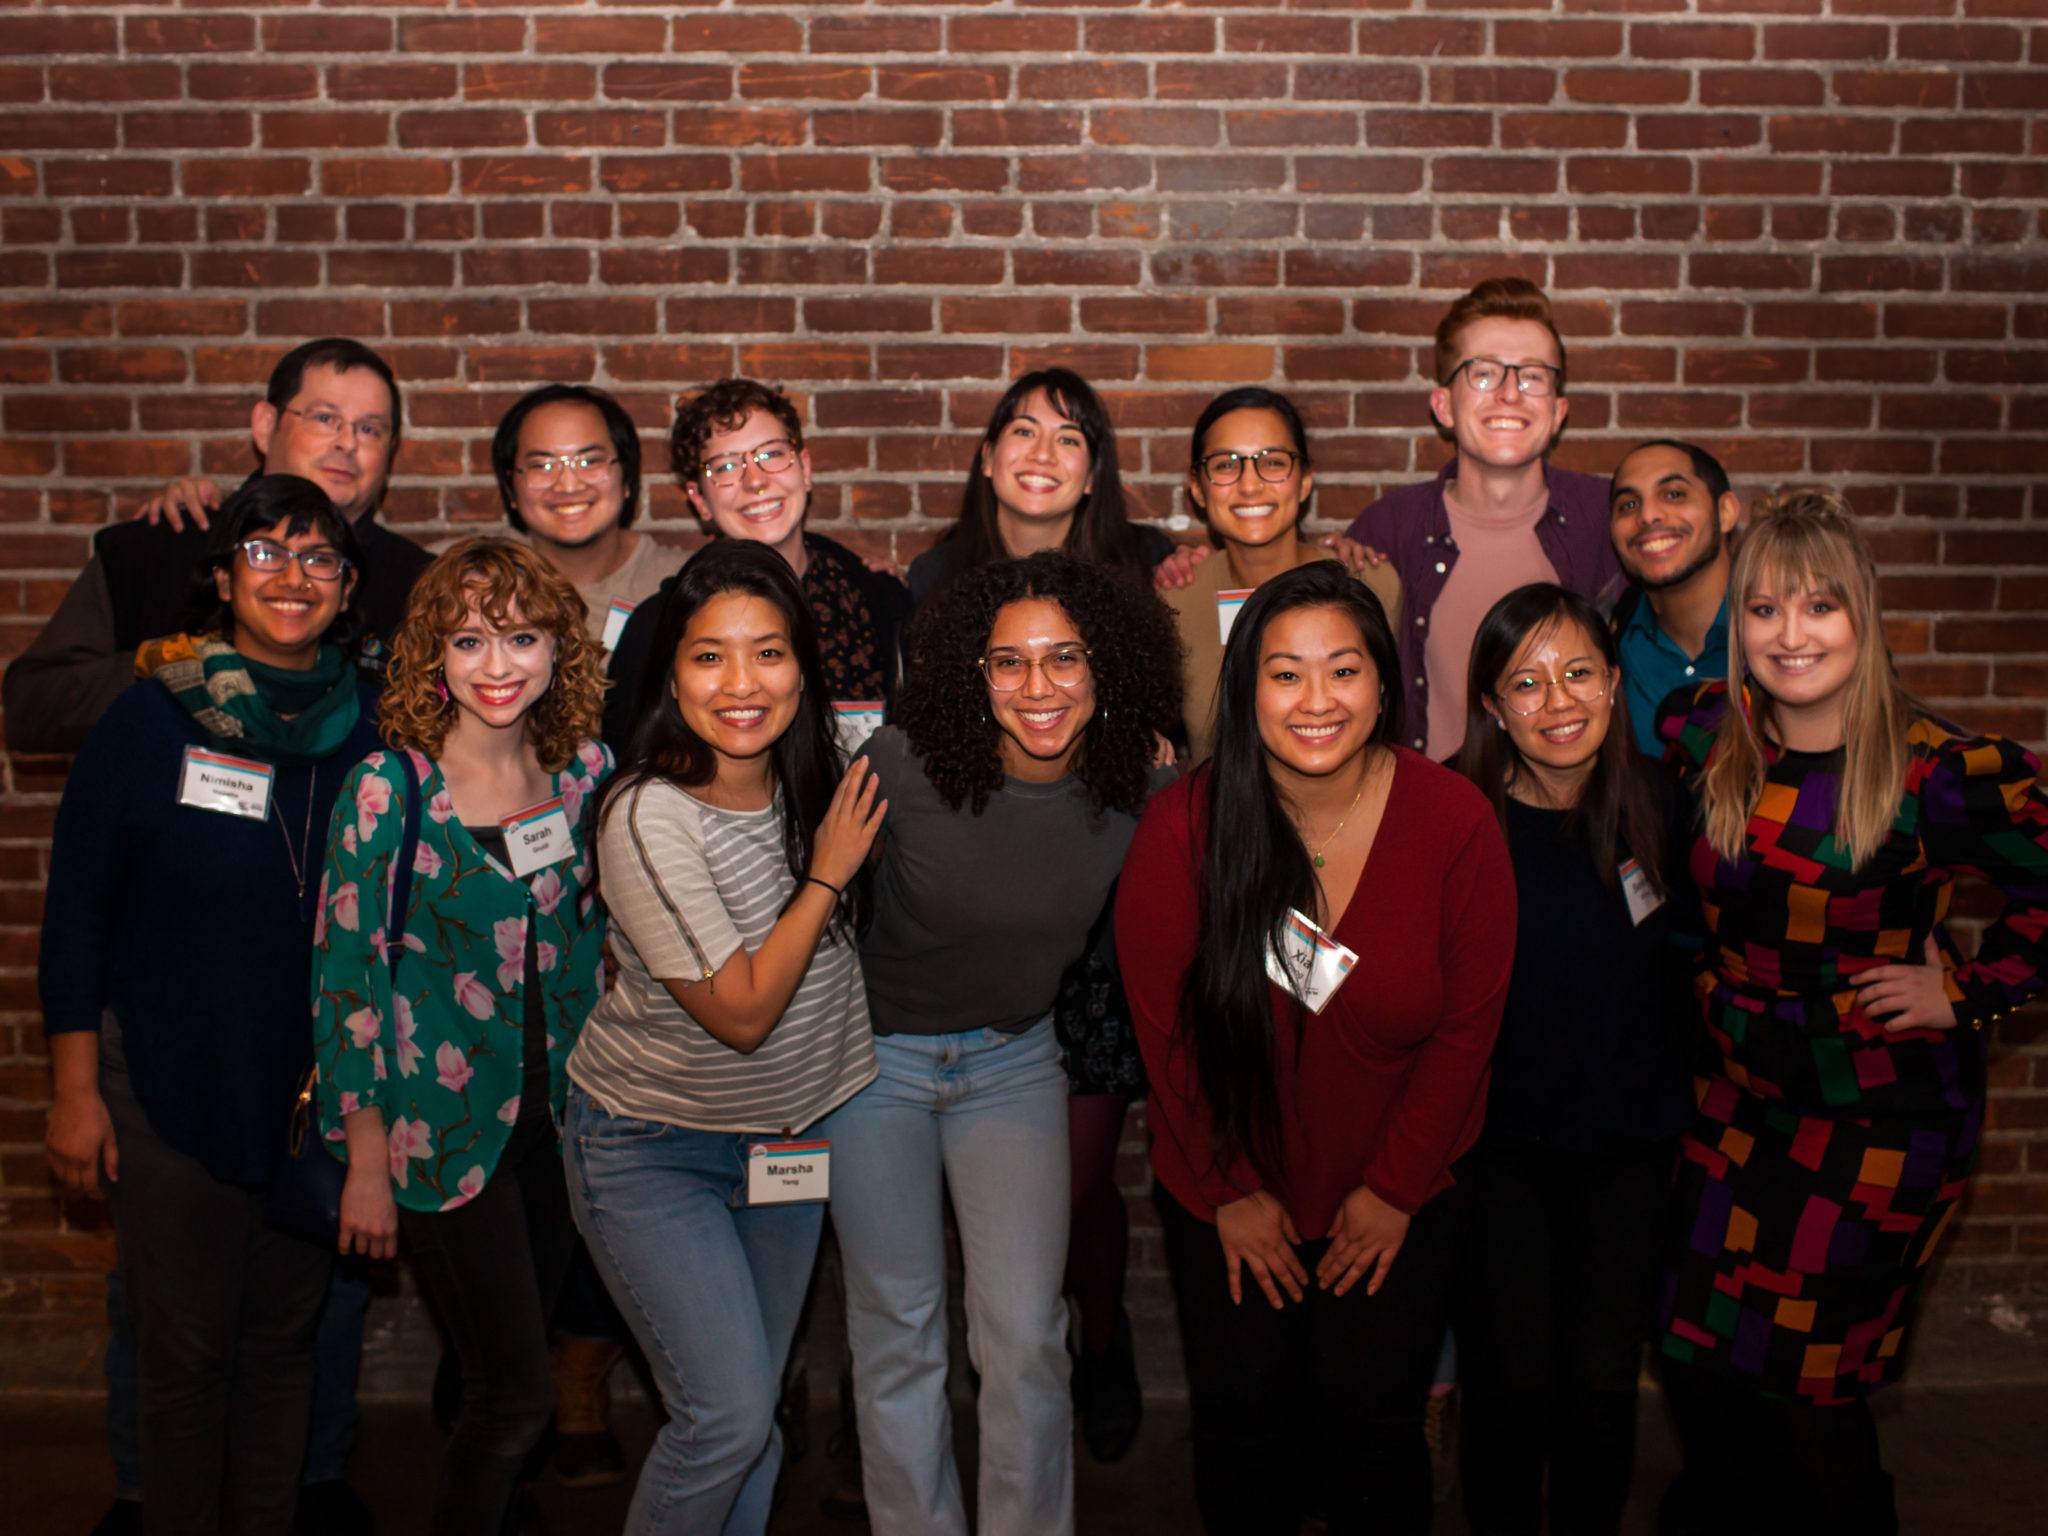 14 people of diverse background pose for a photo against a brick wall.